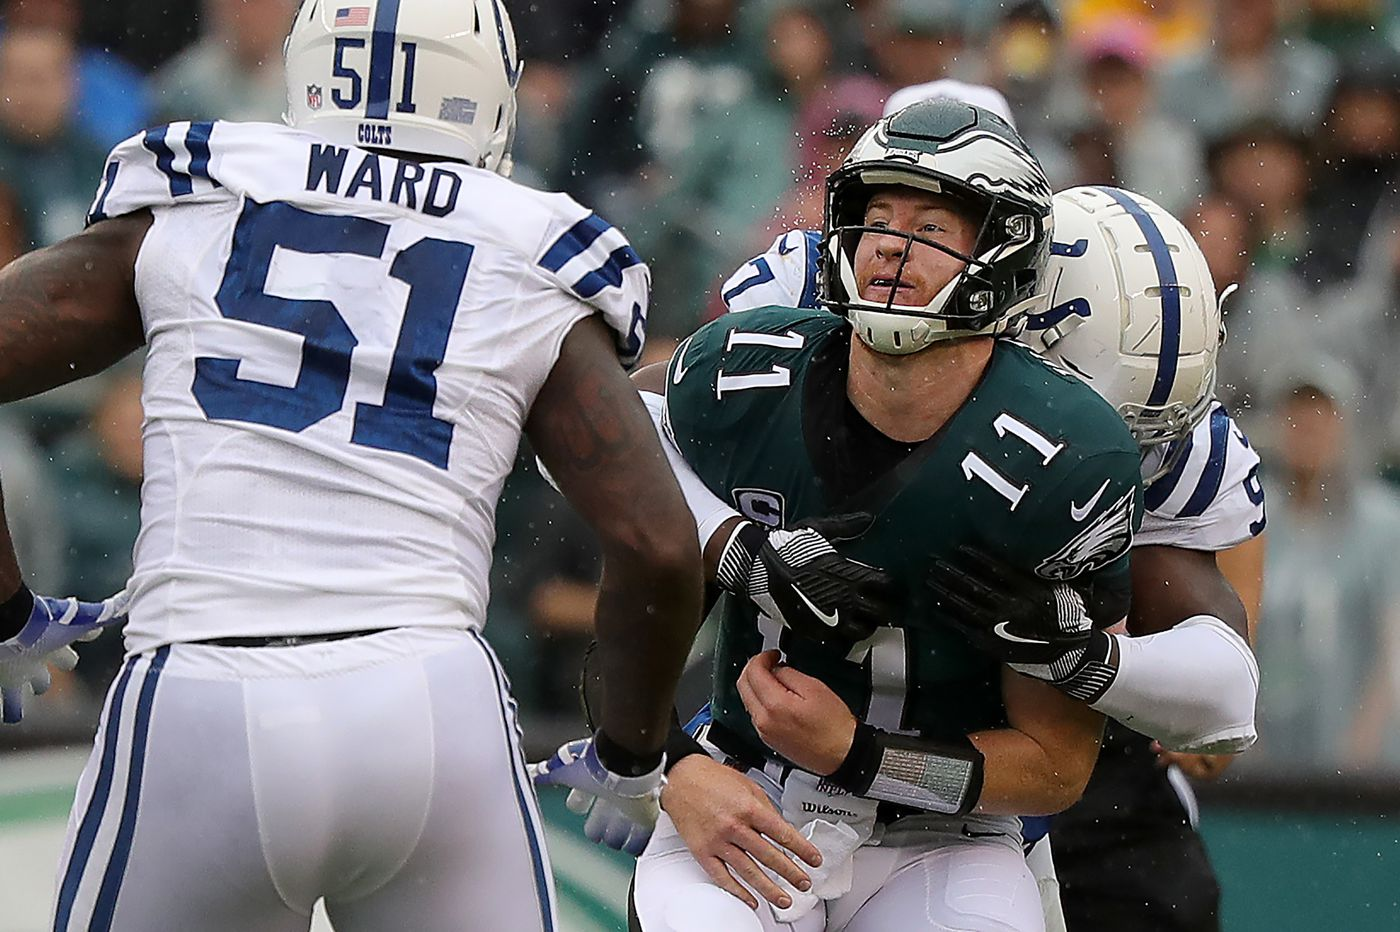 The NFL's roughing-the-passer conundrum hasn't really harmed the Eagles. Yet. | Mike Sielski